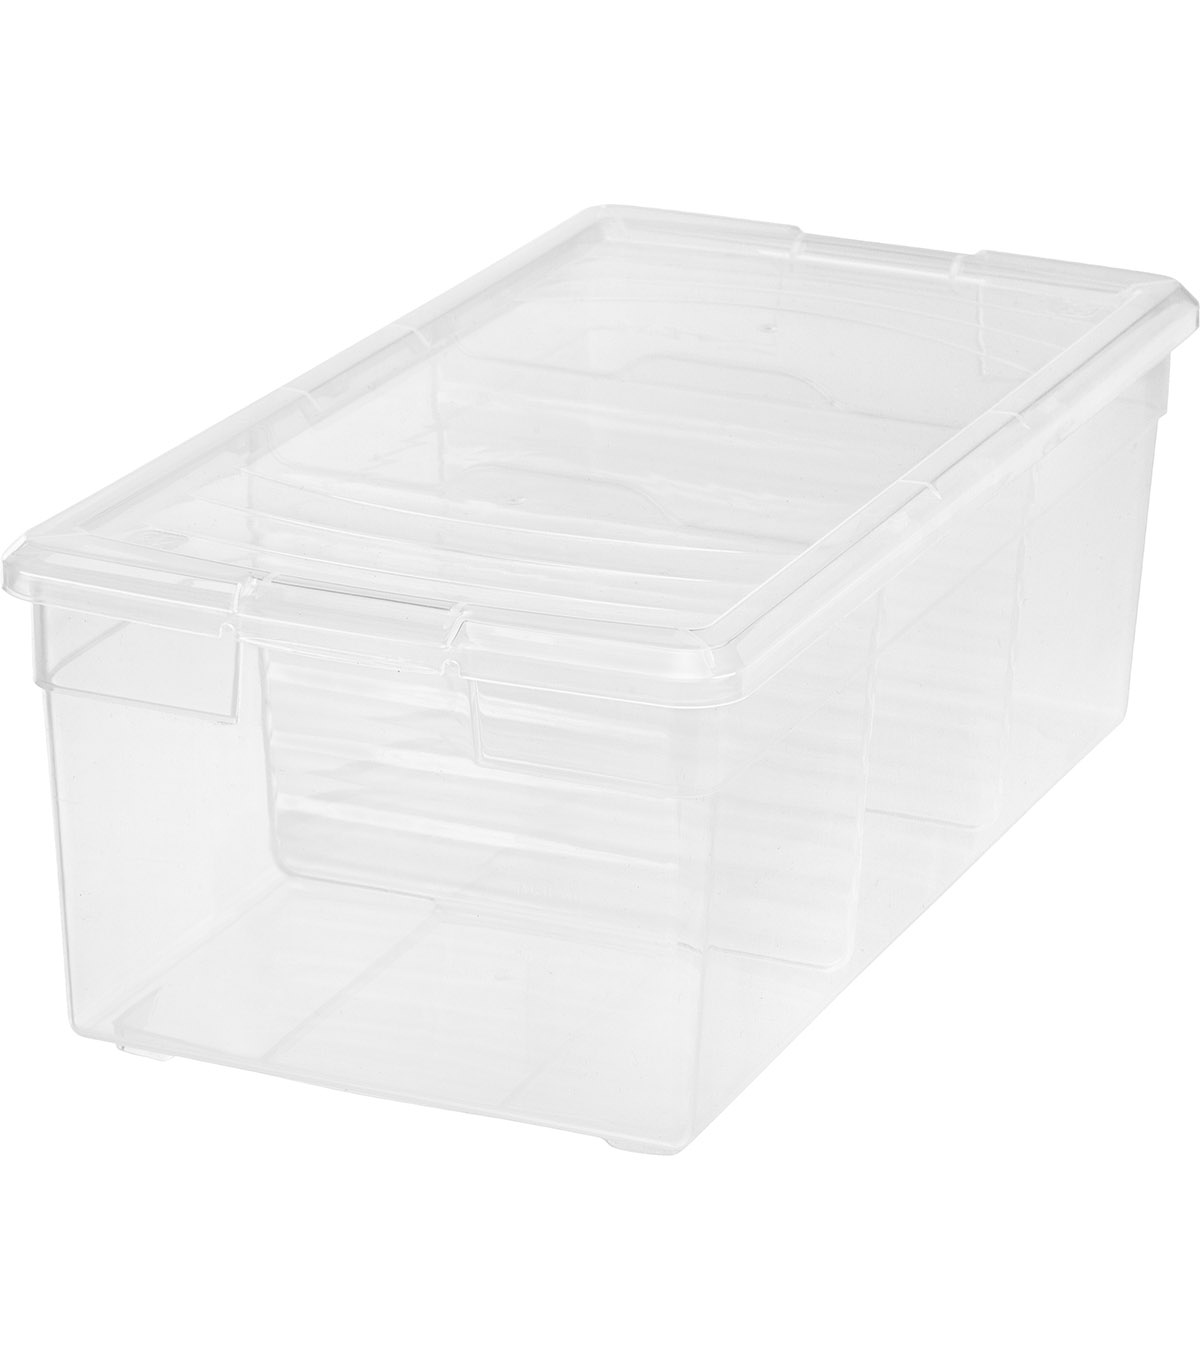 Iris® CD/Media Divided Storage Box